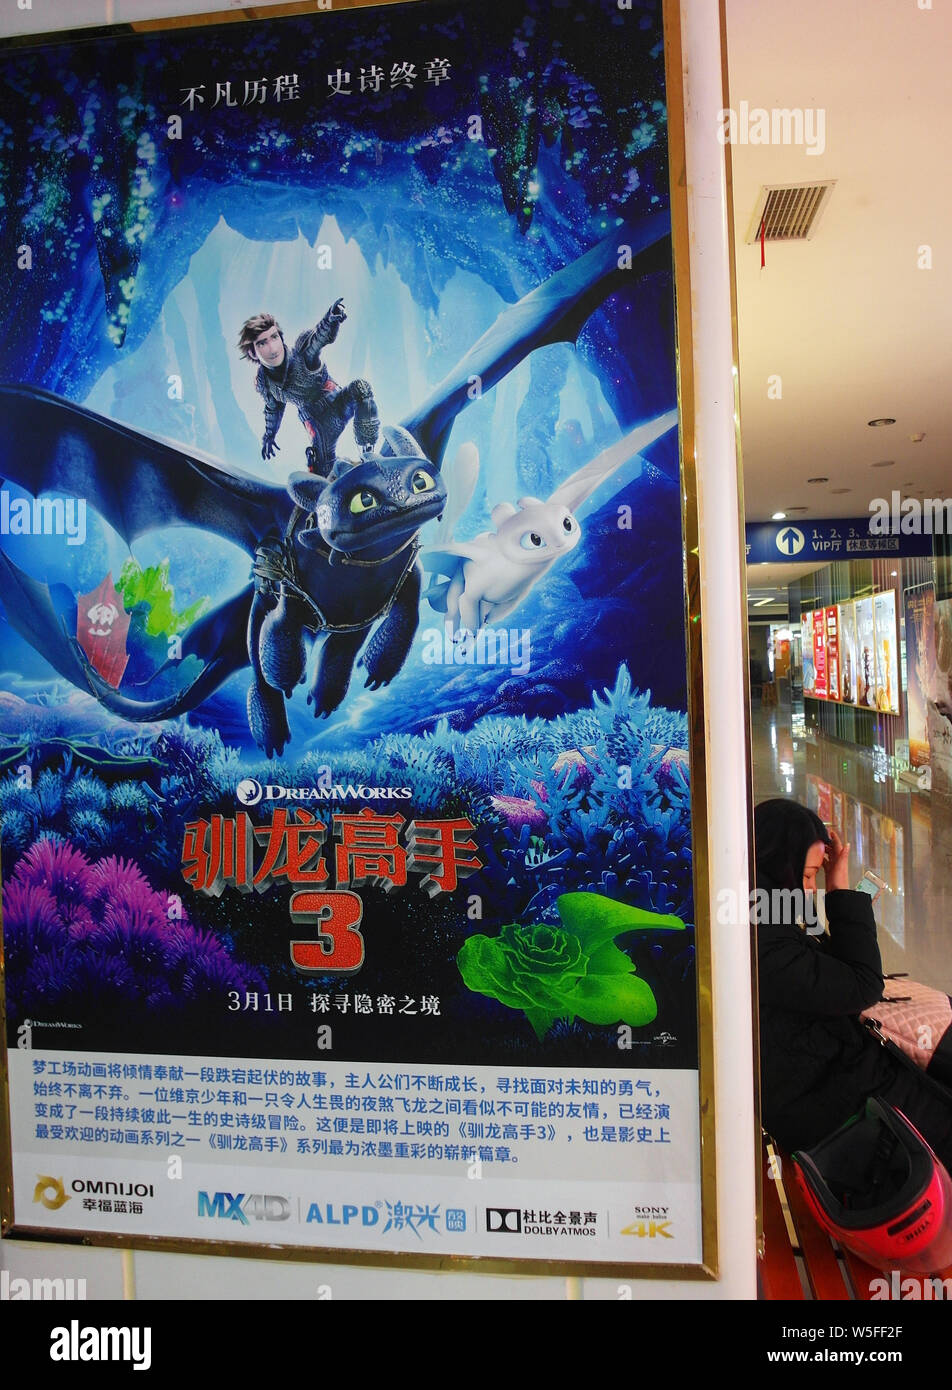 File View Of A Poster For The Movie How To Train Your Dragon The Hidden World At A Cinema In Yichang City Central China S Hubei Province 21 Fe Stock Photo Alamy